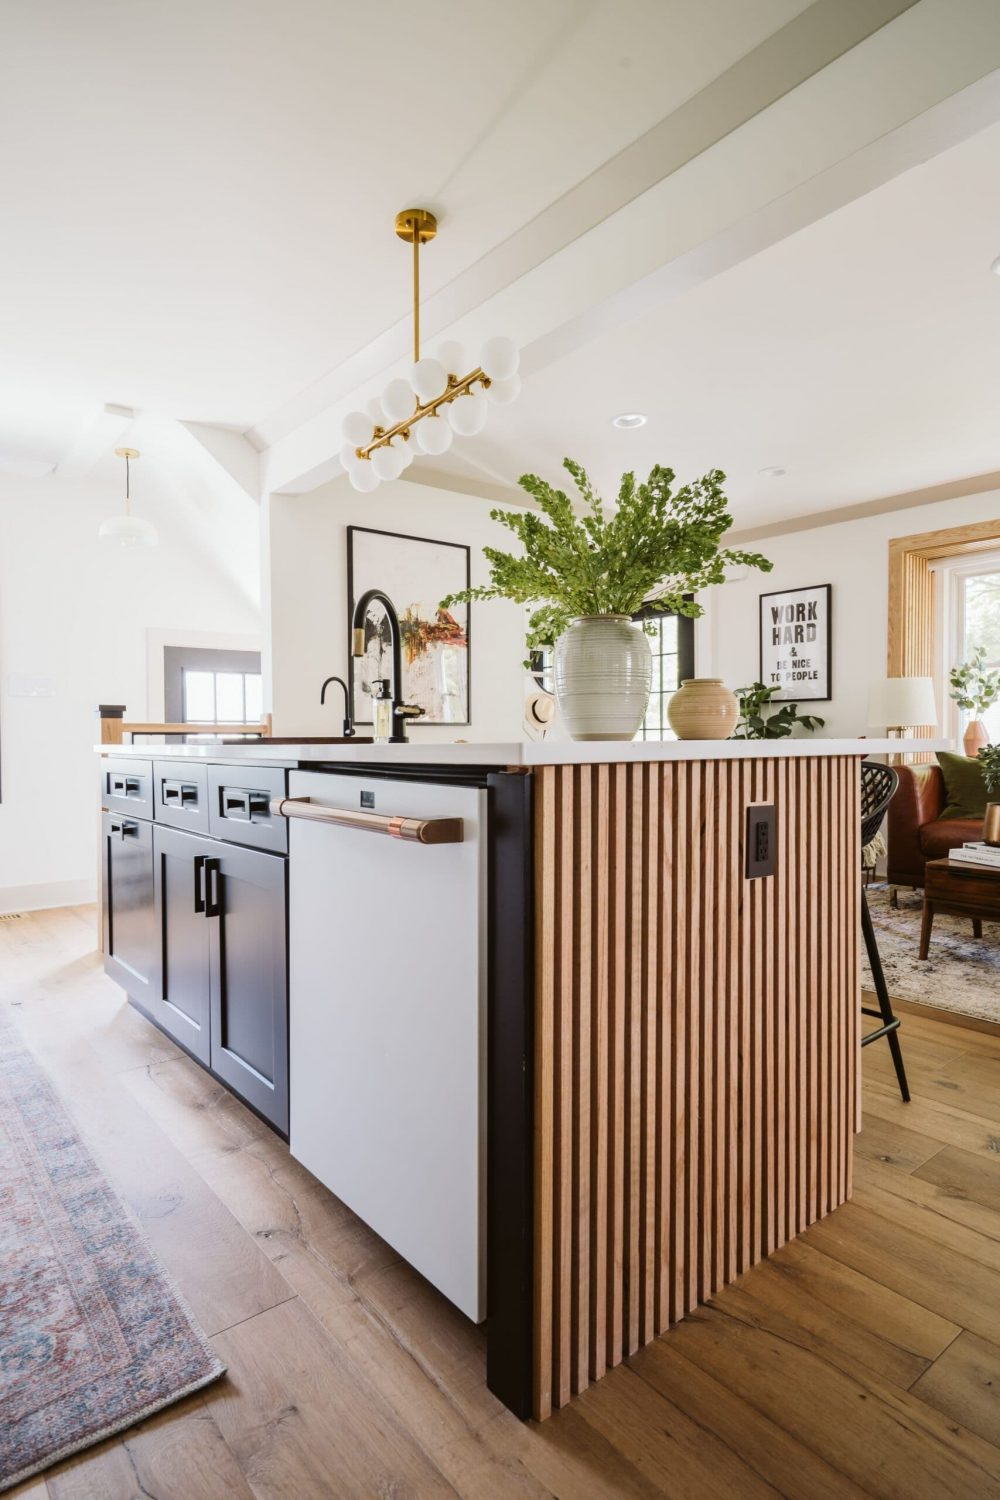 Mixing metals in the kitchen? 4 design tips to remember